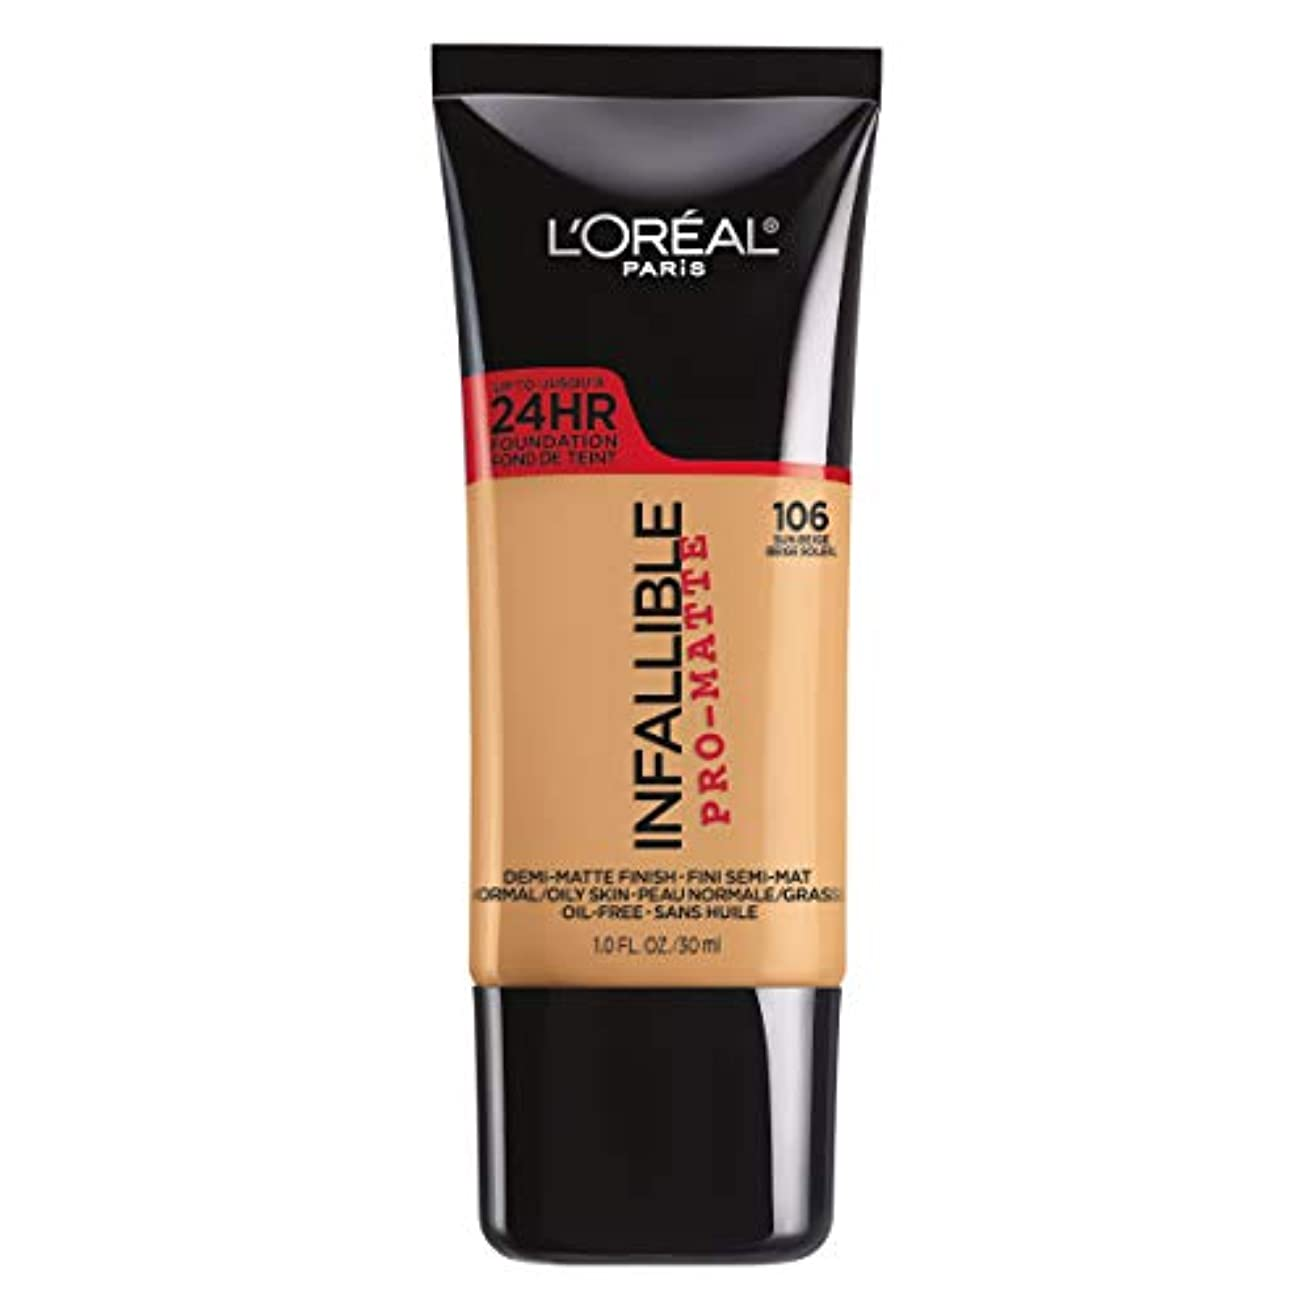 近似モーターユーモアL'Oreal Paris Infallible Pro-Matte Foundation Makeup, 106 Sun Beige, 1 fl. oz[並行輸入品]